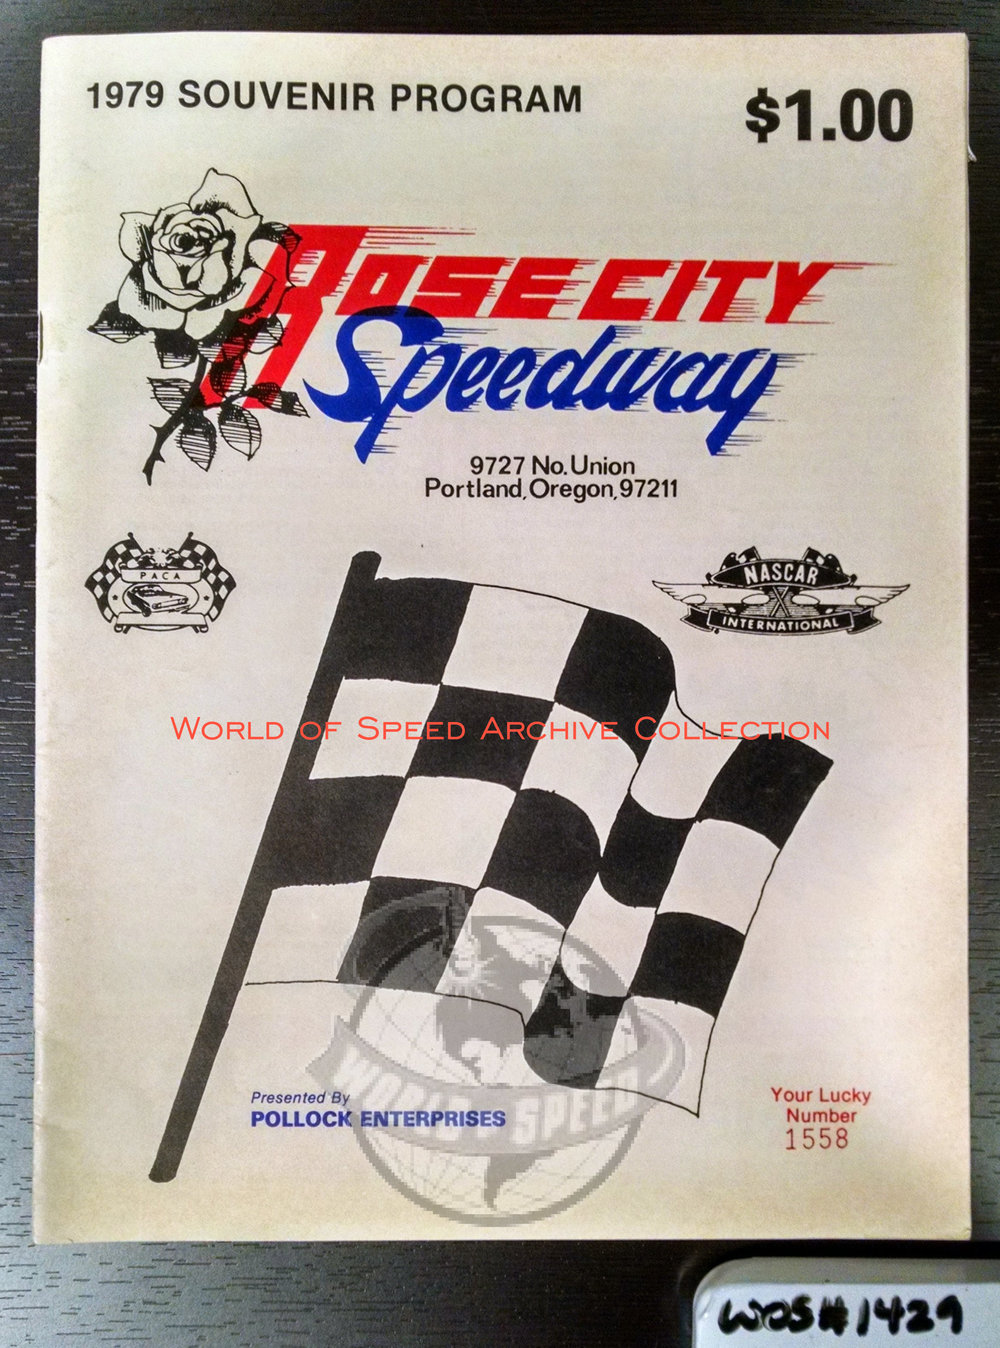 1979 program for when Portland Speedway was shortly re-branded as Rose City Speedway